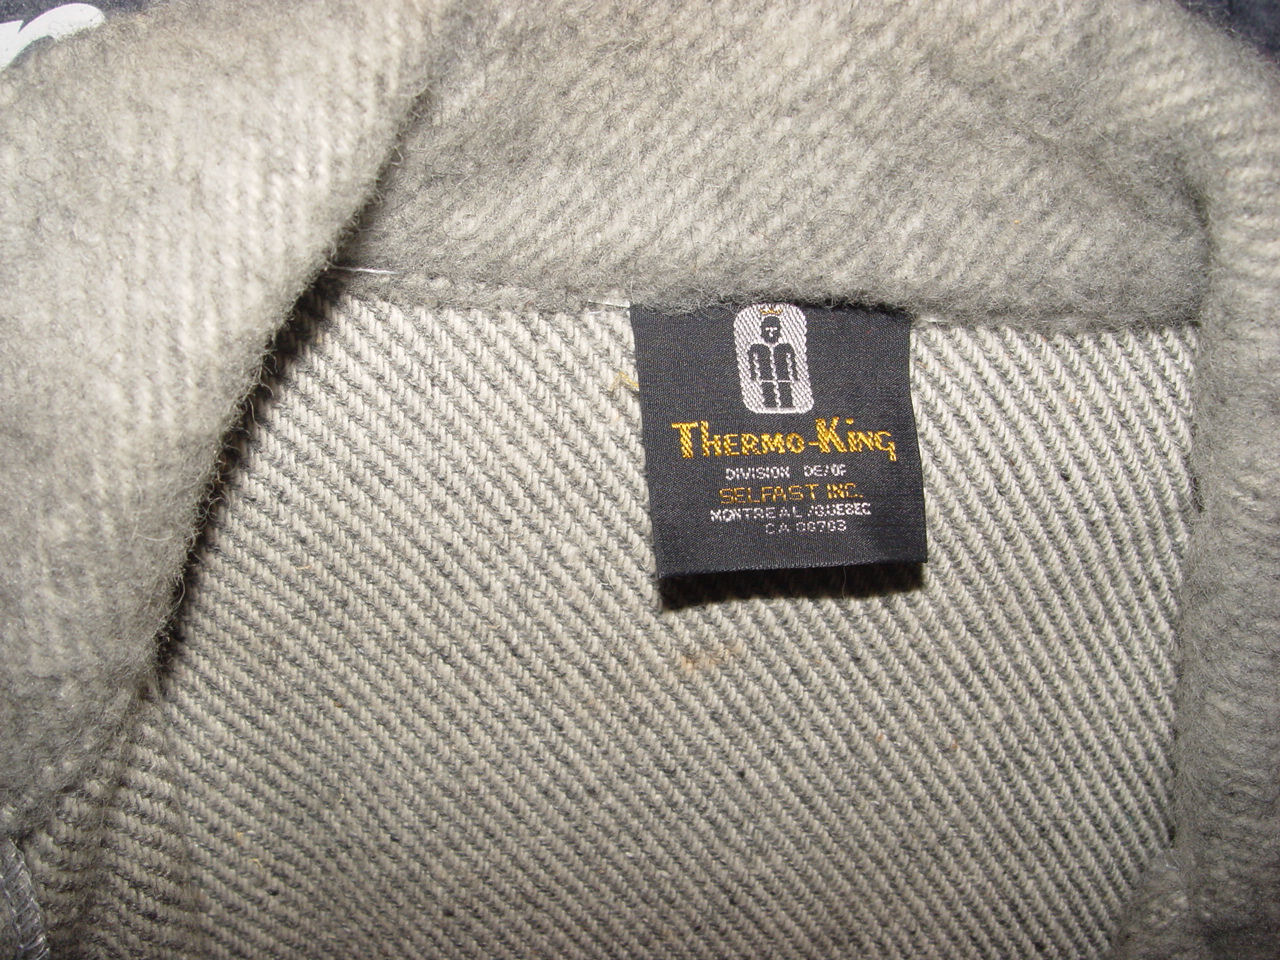 Vintage                                         Traditional Styled Classic                                         Cruiser Men's Soft Tweed Wool                                         Coat ~ Size L Thermo King                                         Montreal / Quebec 1960's